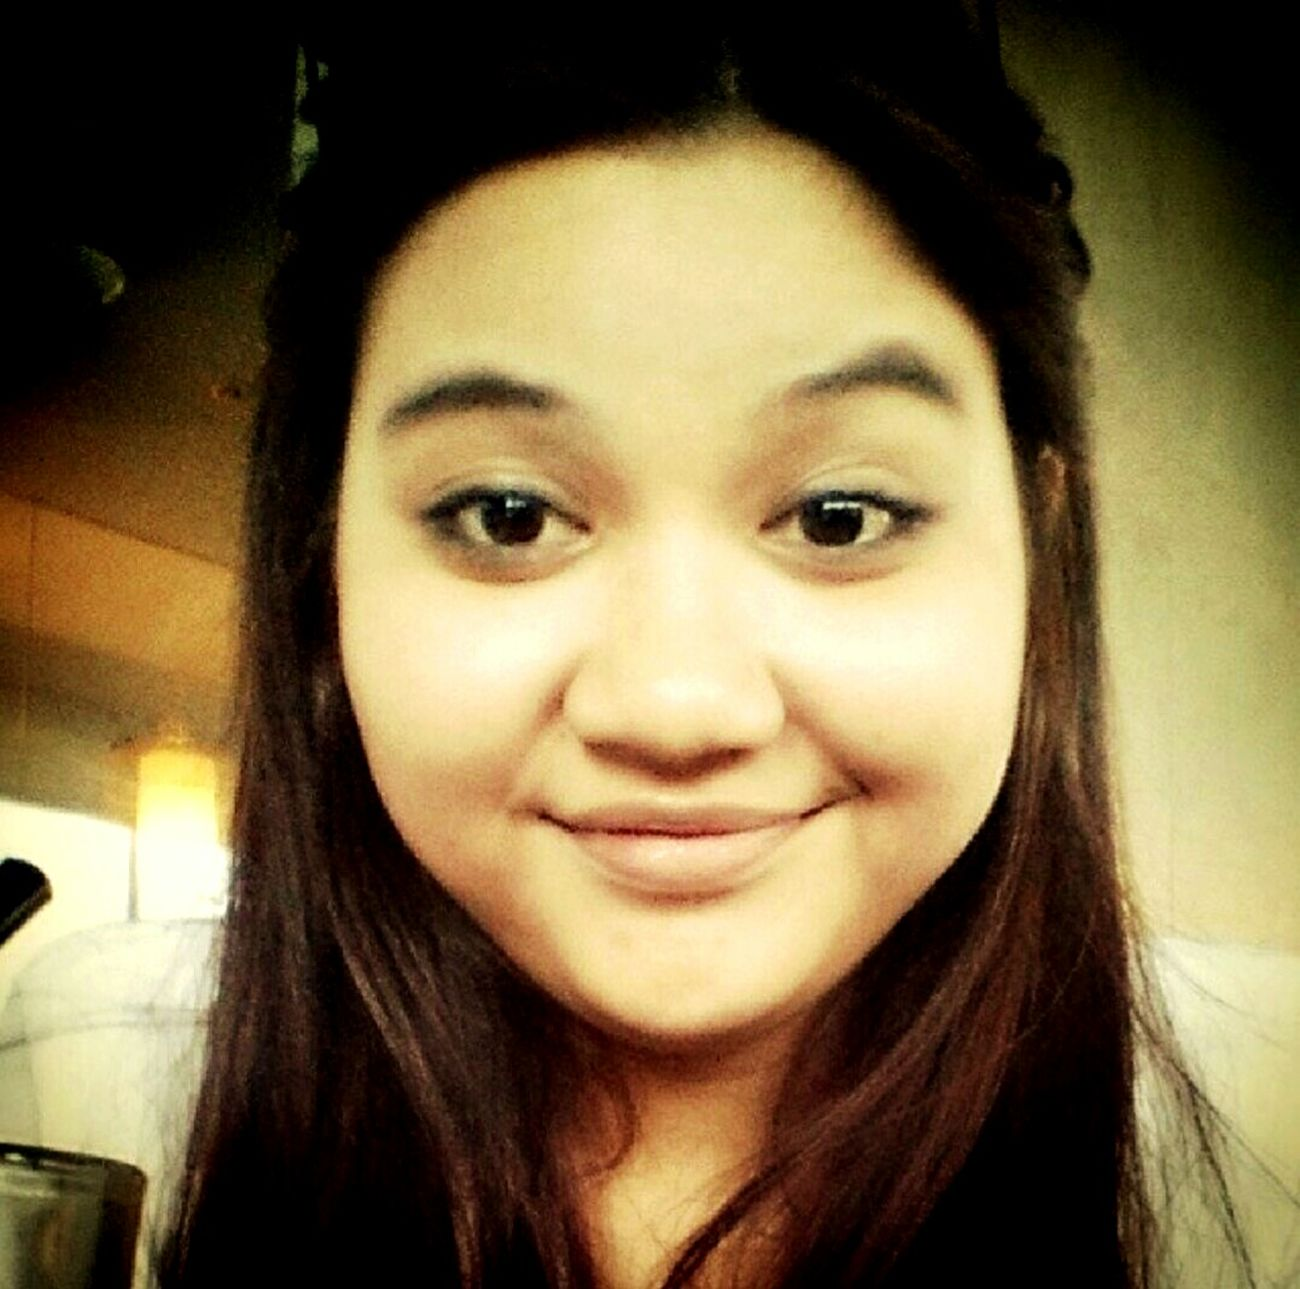 Natural Hair Weirdfaces Weirdselfie Self Potrait